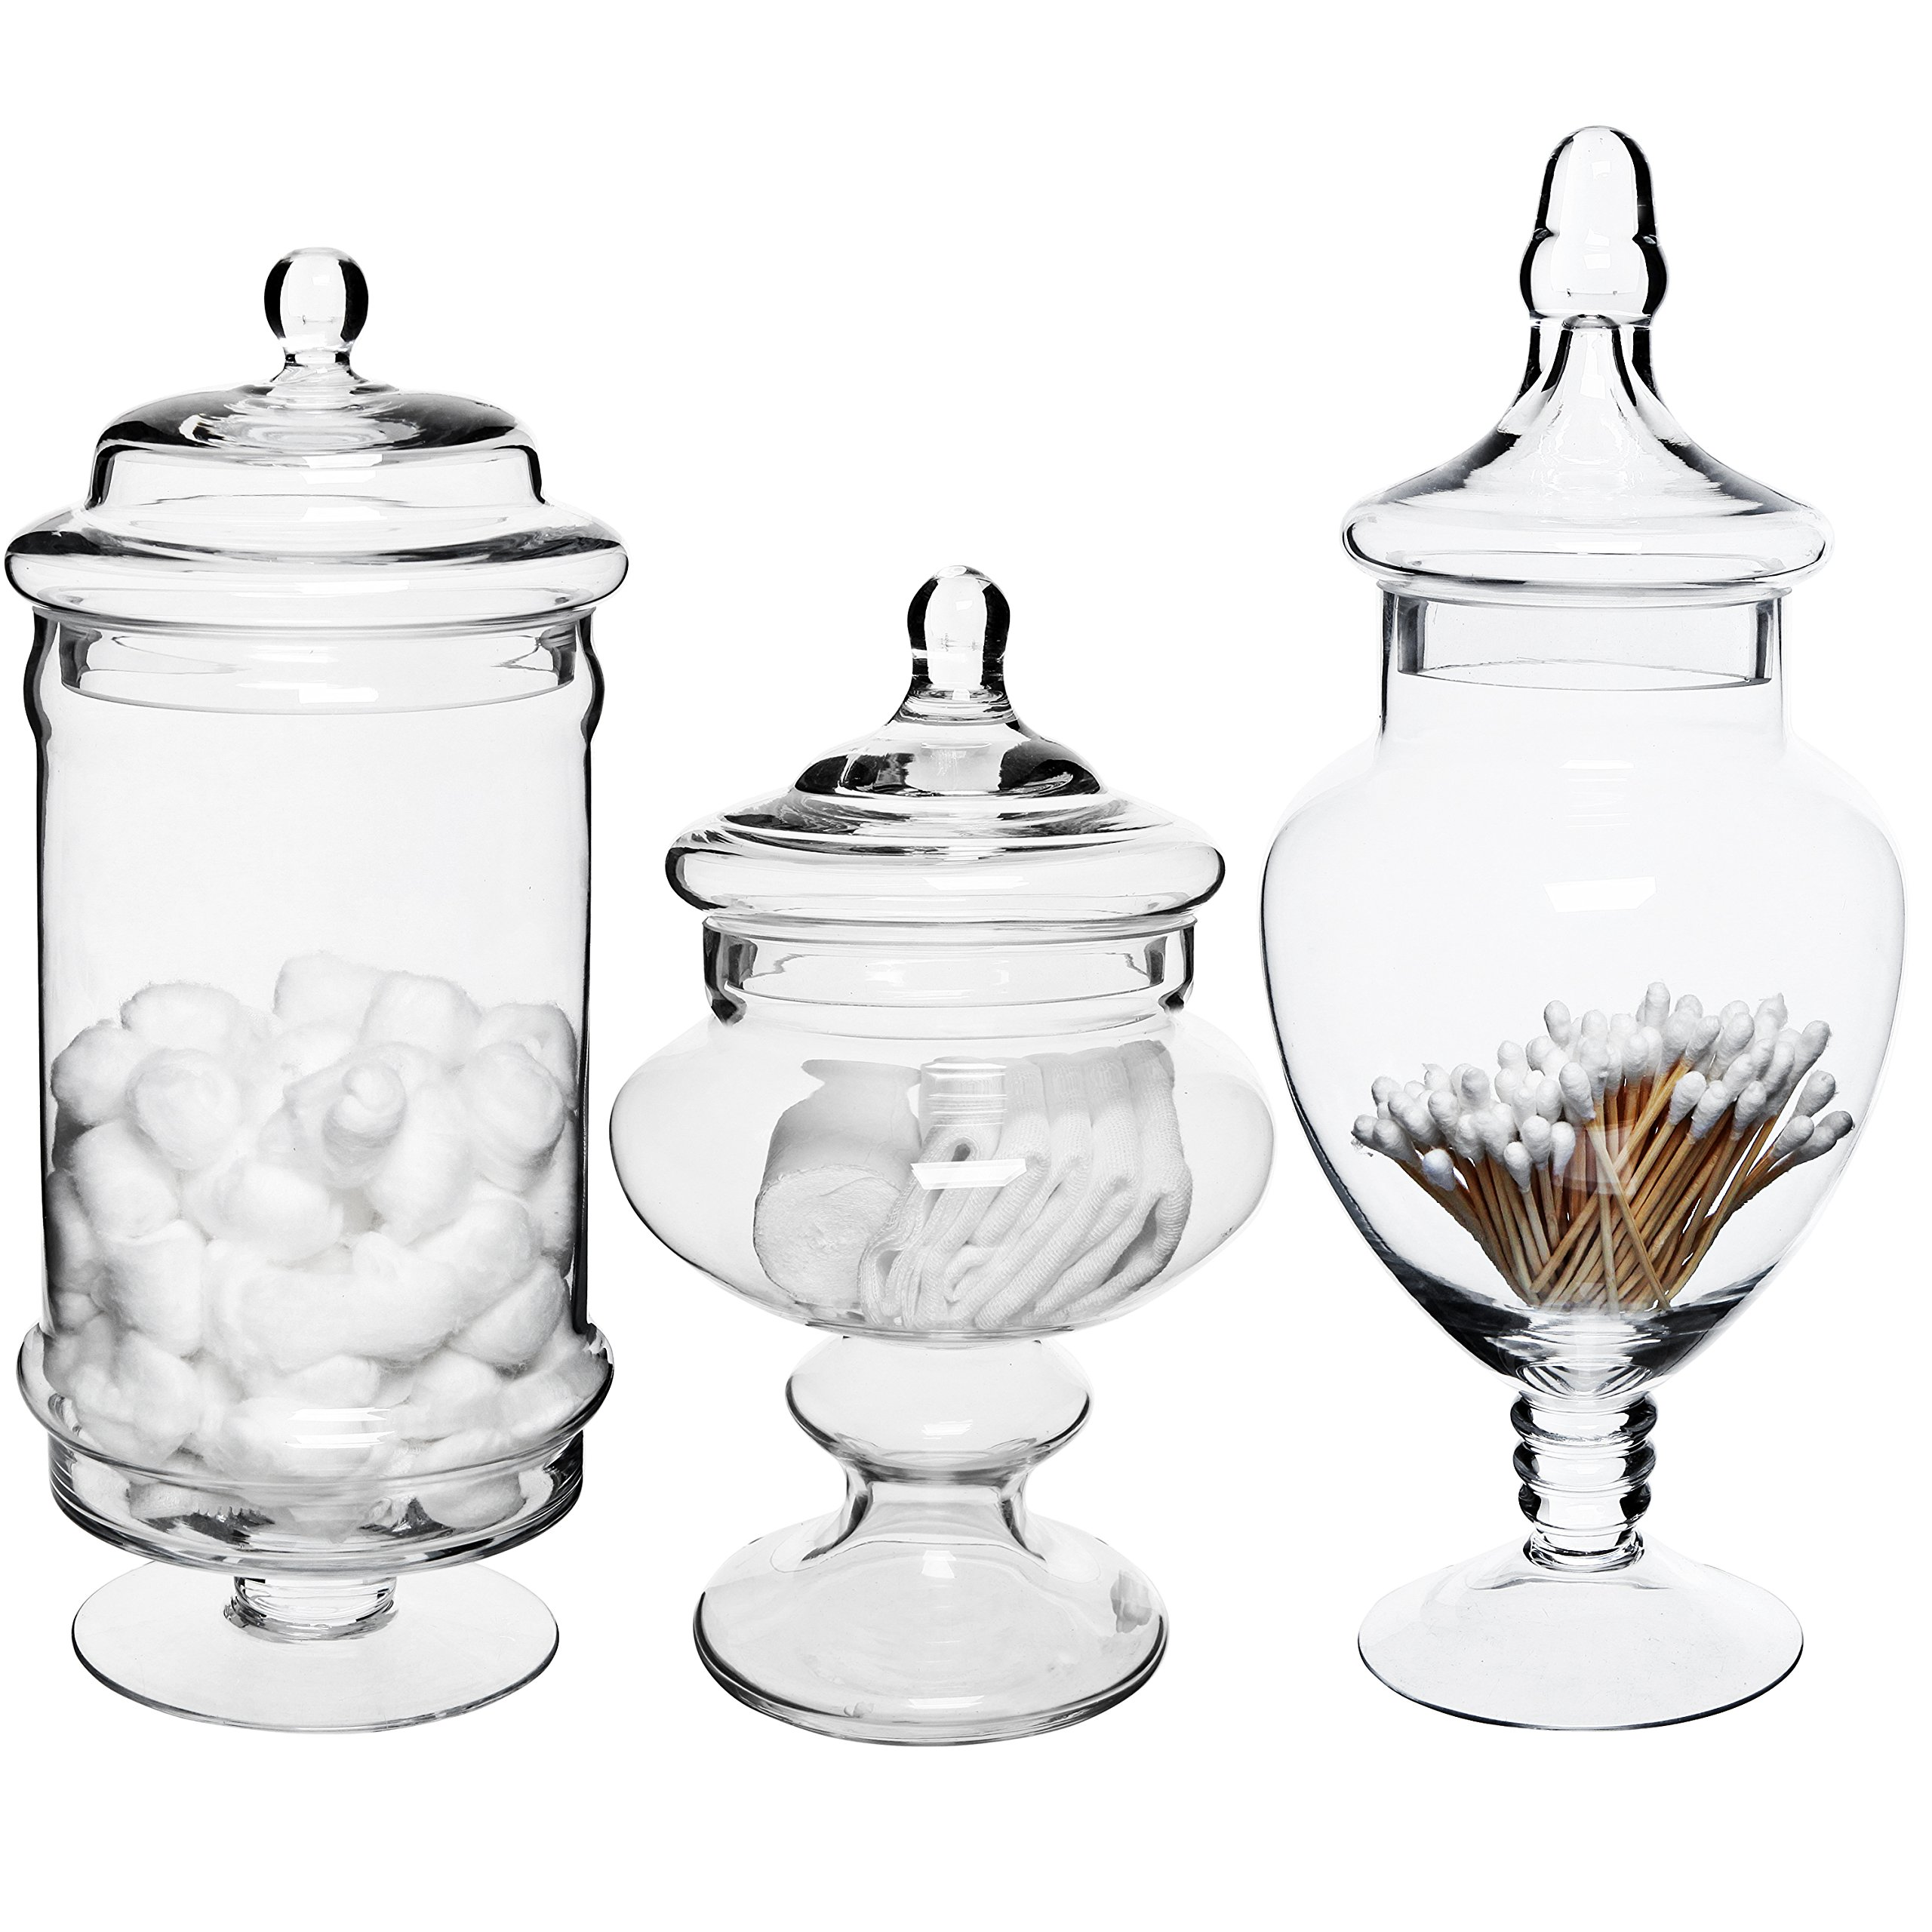 MyGift Set of 3 Deluxe Apothecary Jar Sets/Glass Kitchen Storage Jars/Terrarium & Home Decor Centerpieces by MyGift